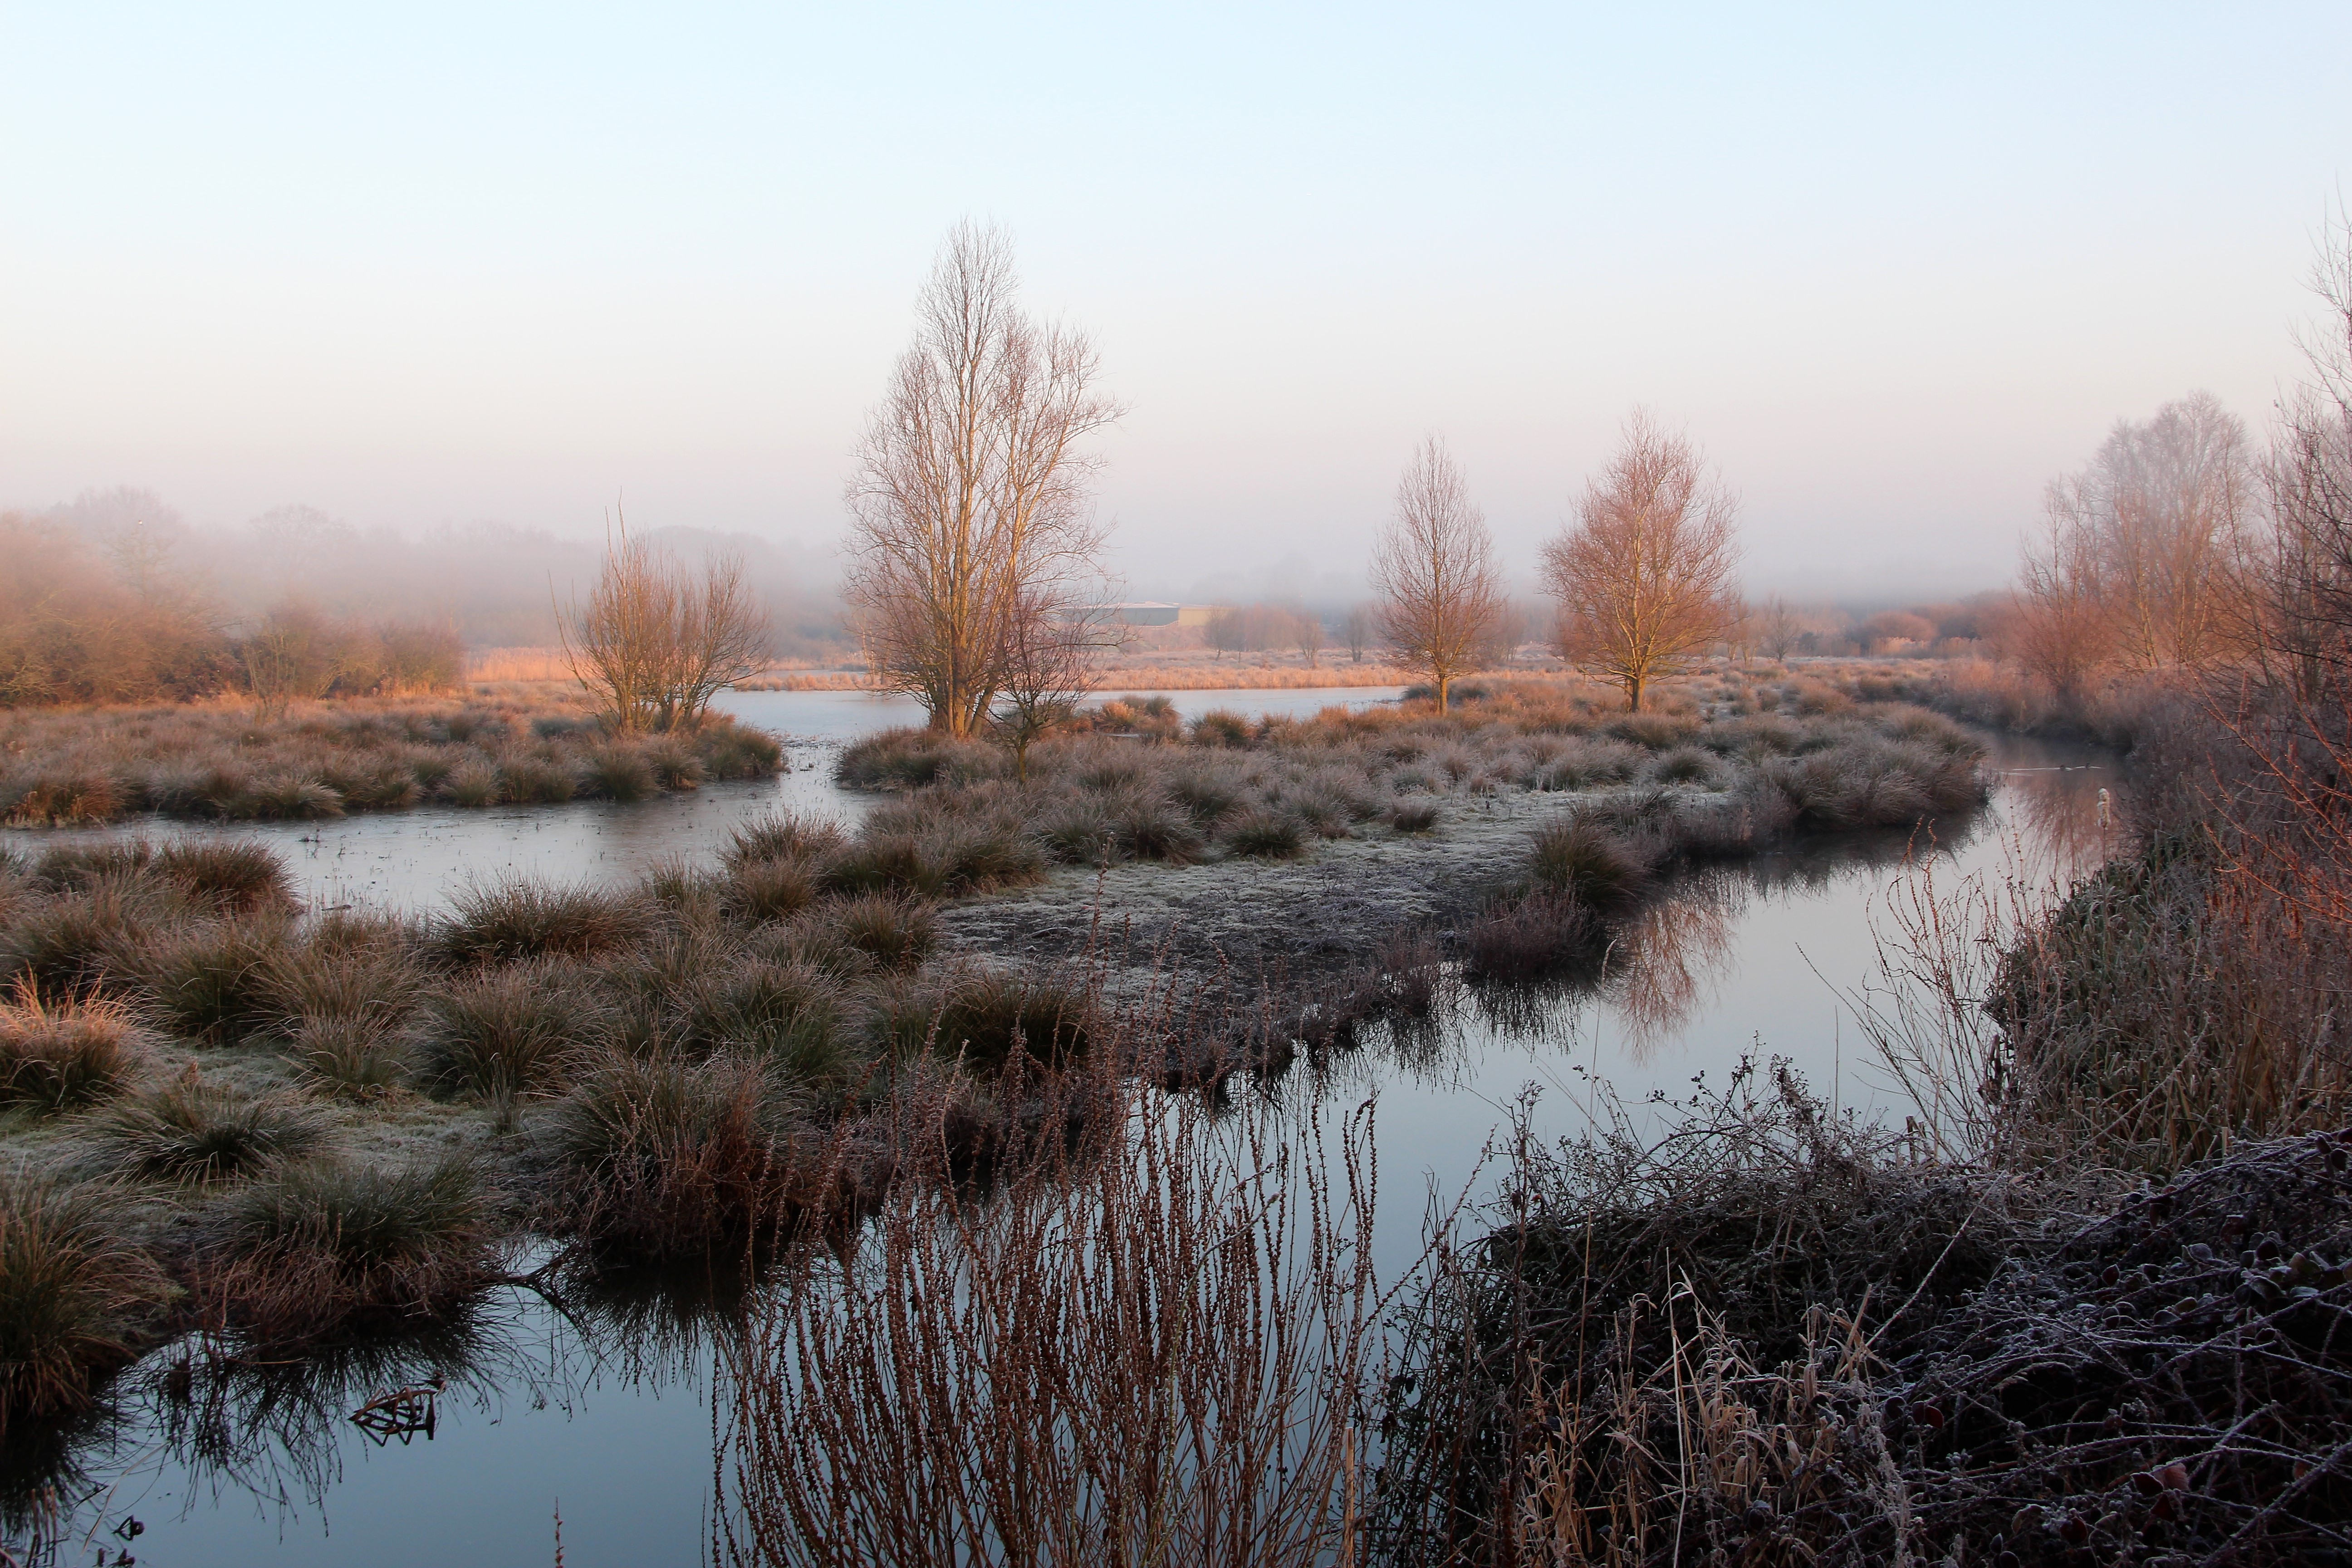 Robert Stevenson won the last Photographic competition with a photo of  Ingrebourne Marshes.